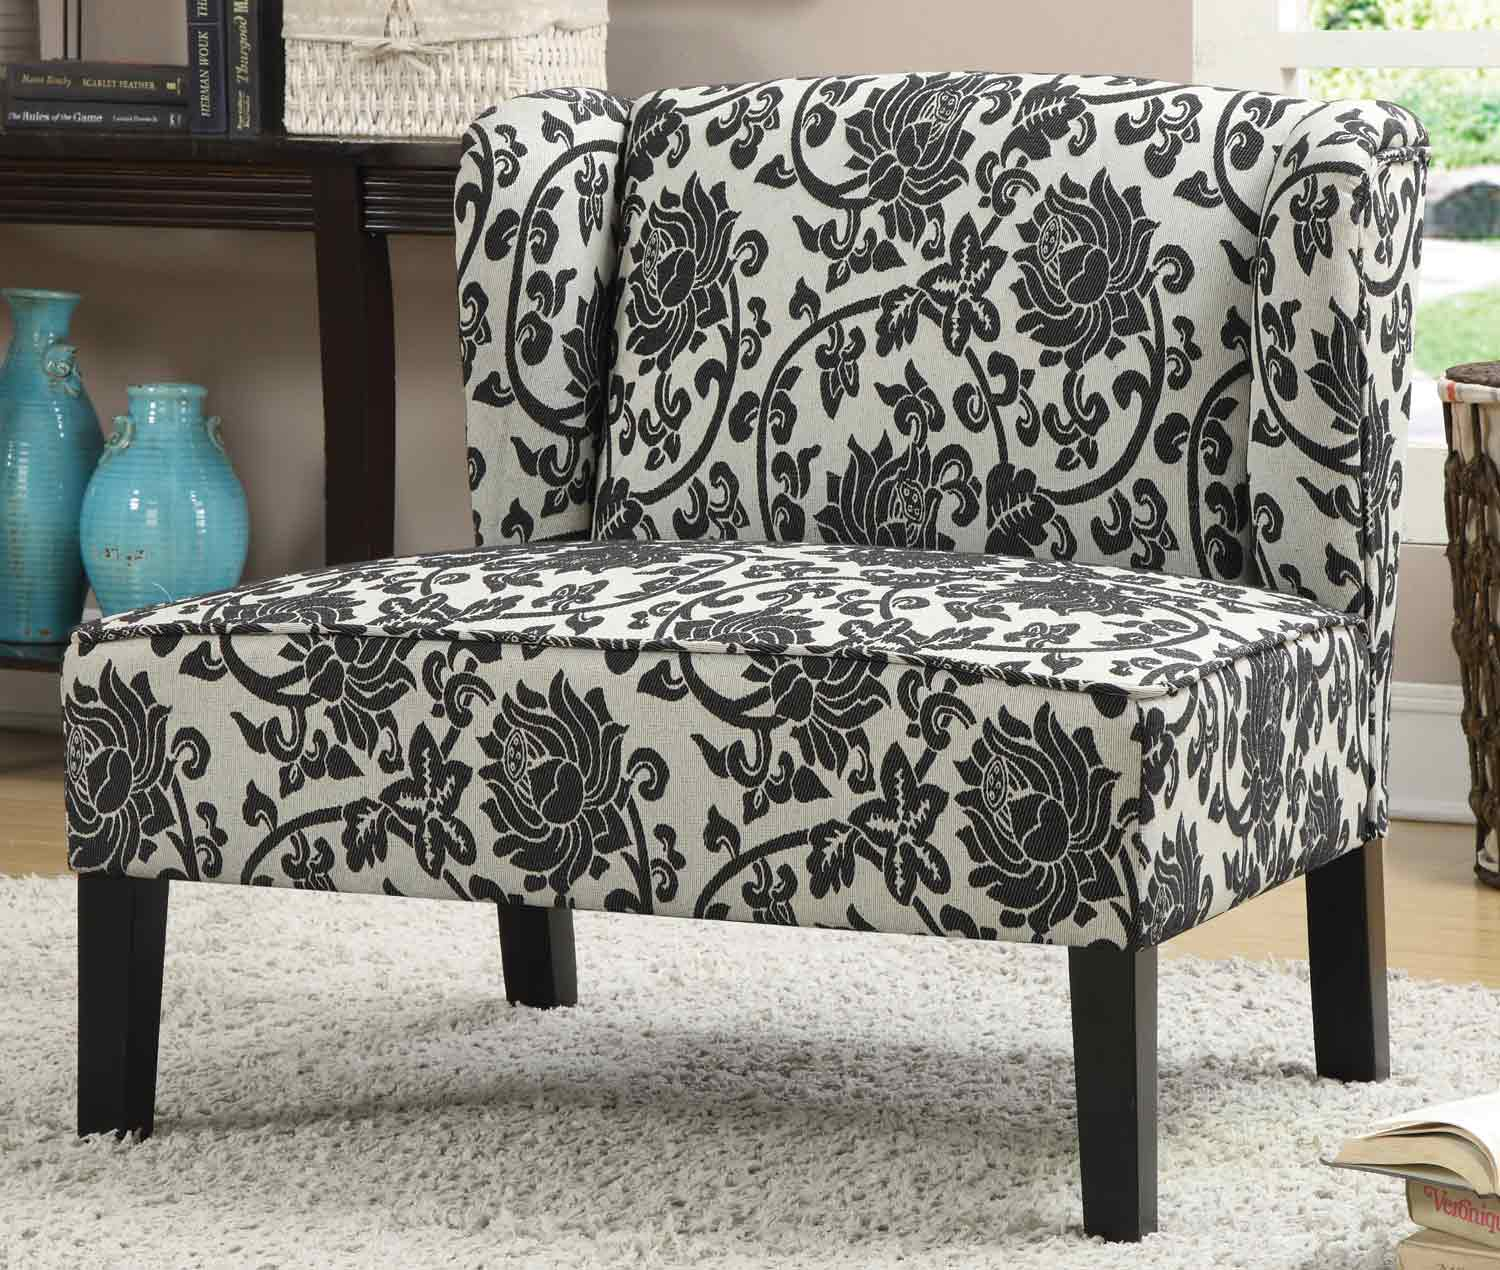 Coaster 902231 Accent Chair - Black/Grey Floral